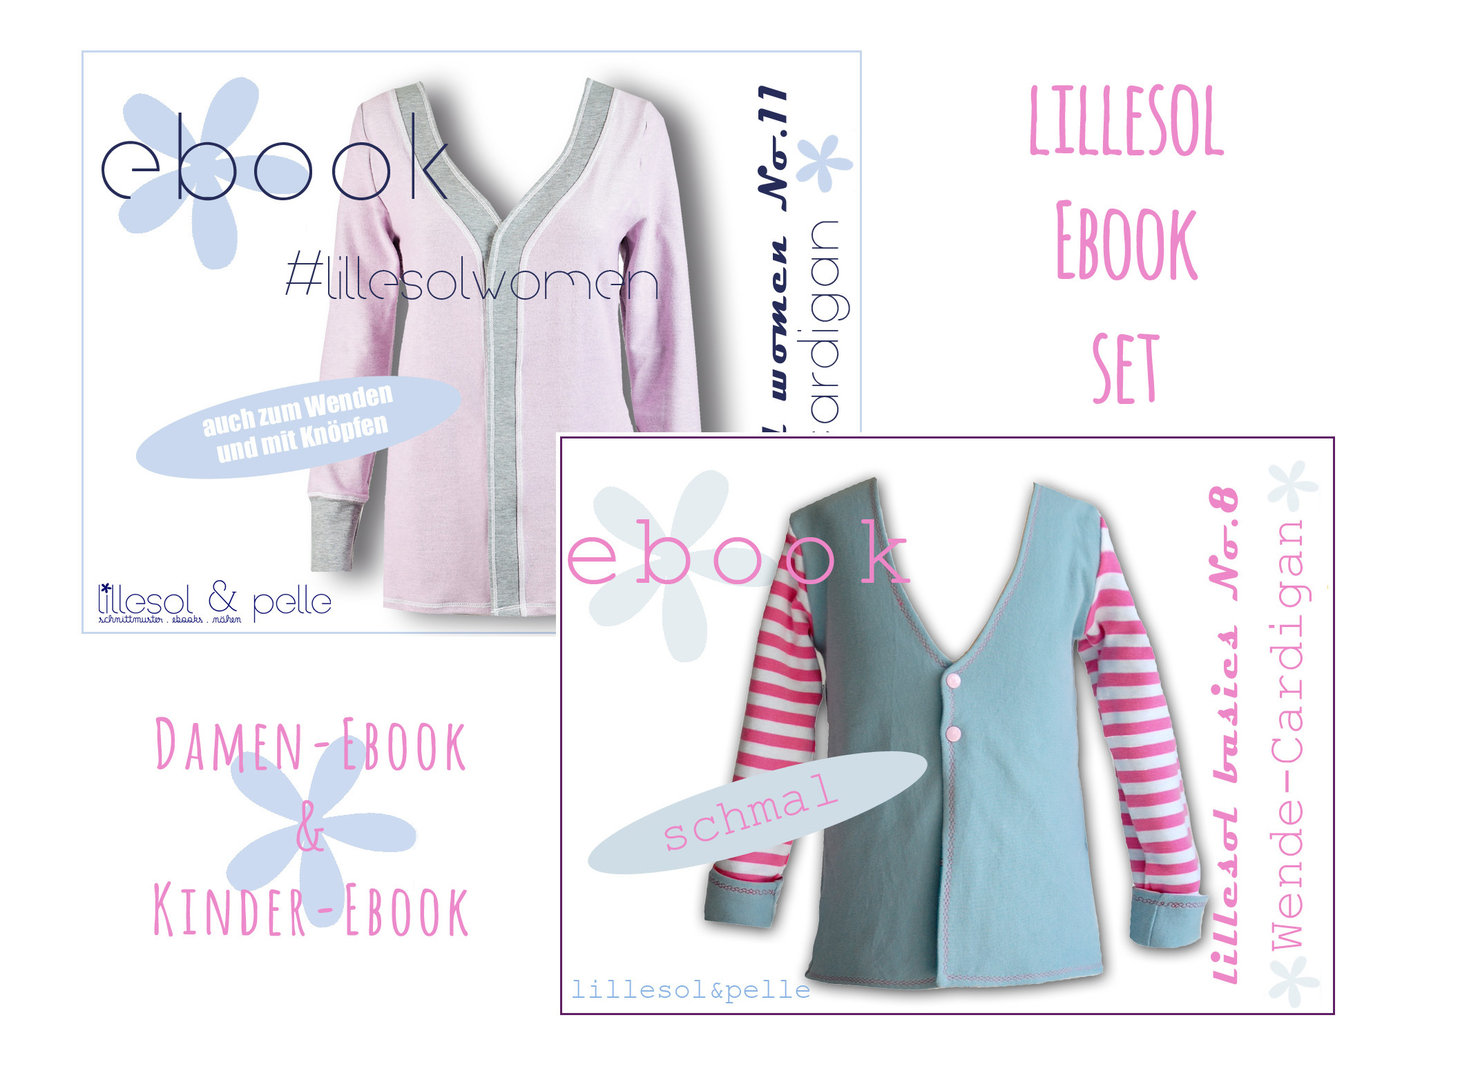 lillesol ebook set basic No.8 und women No.11